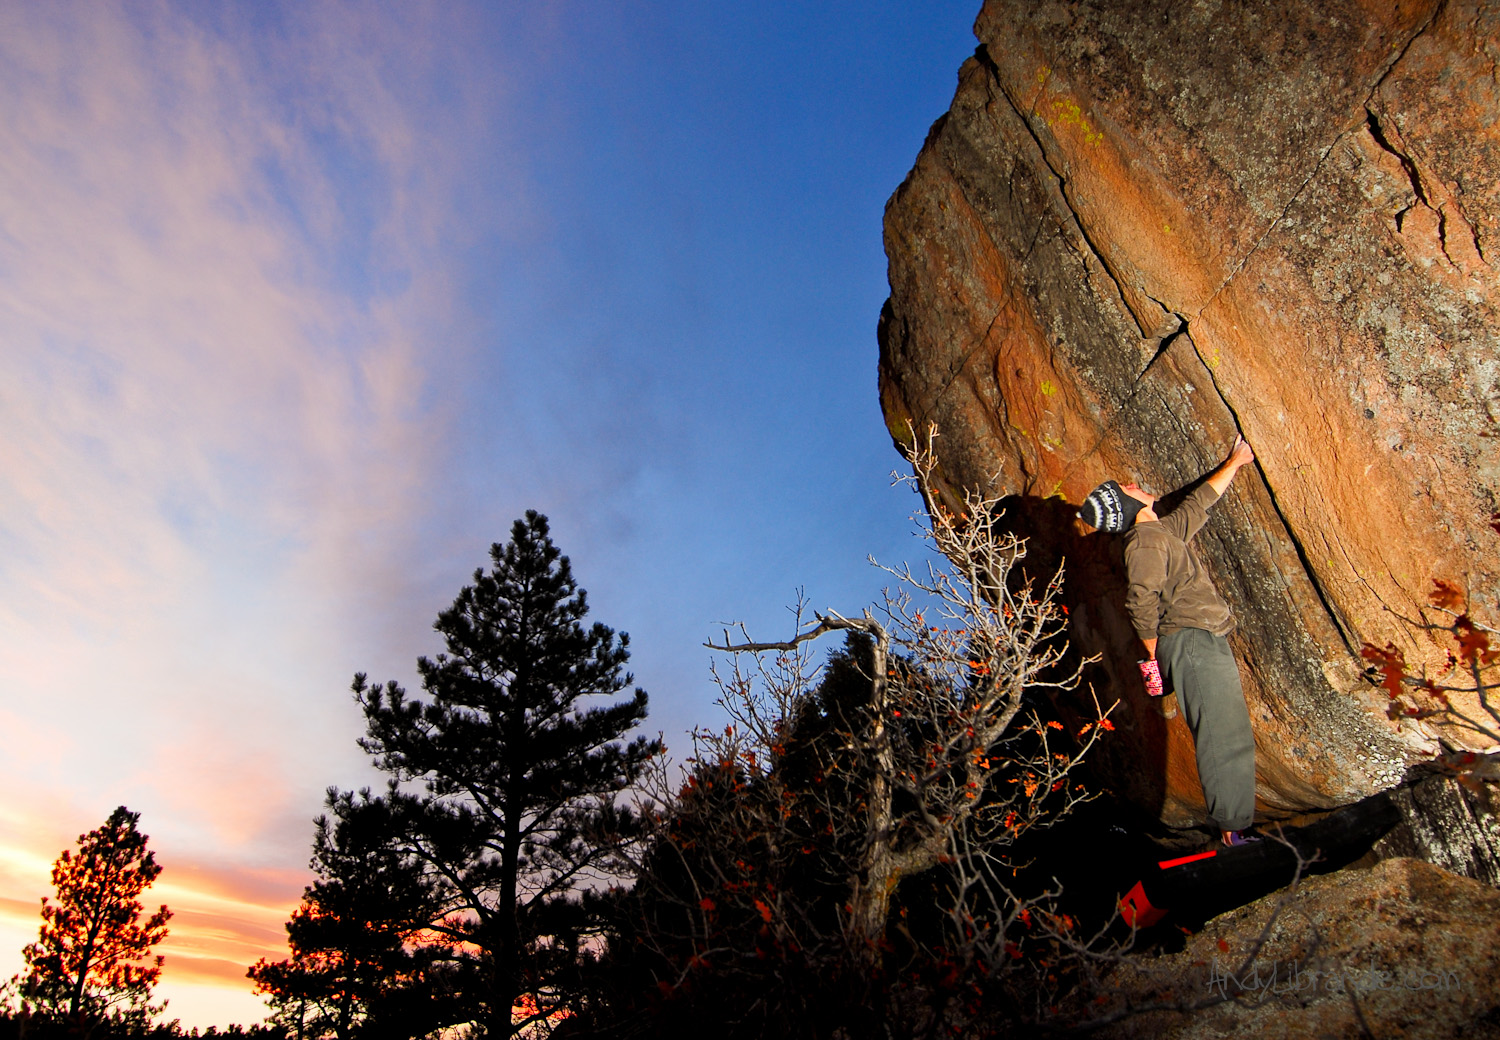 Crack climbing at Castlewood Canyon State Park Colorado